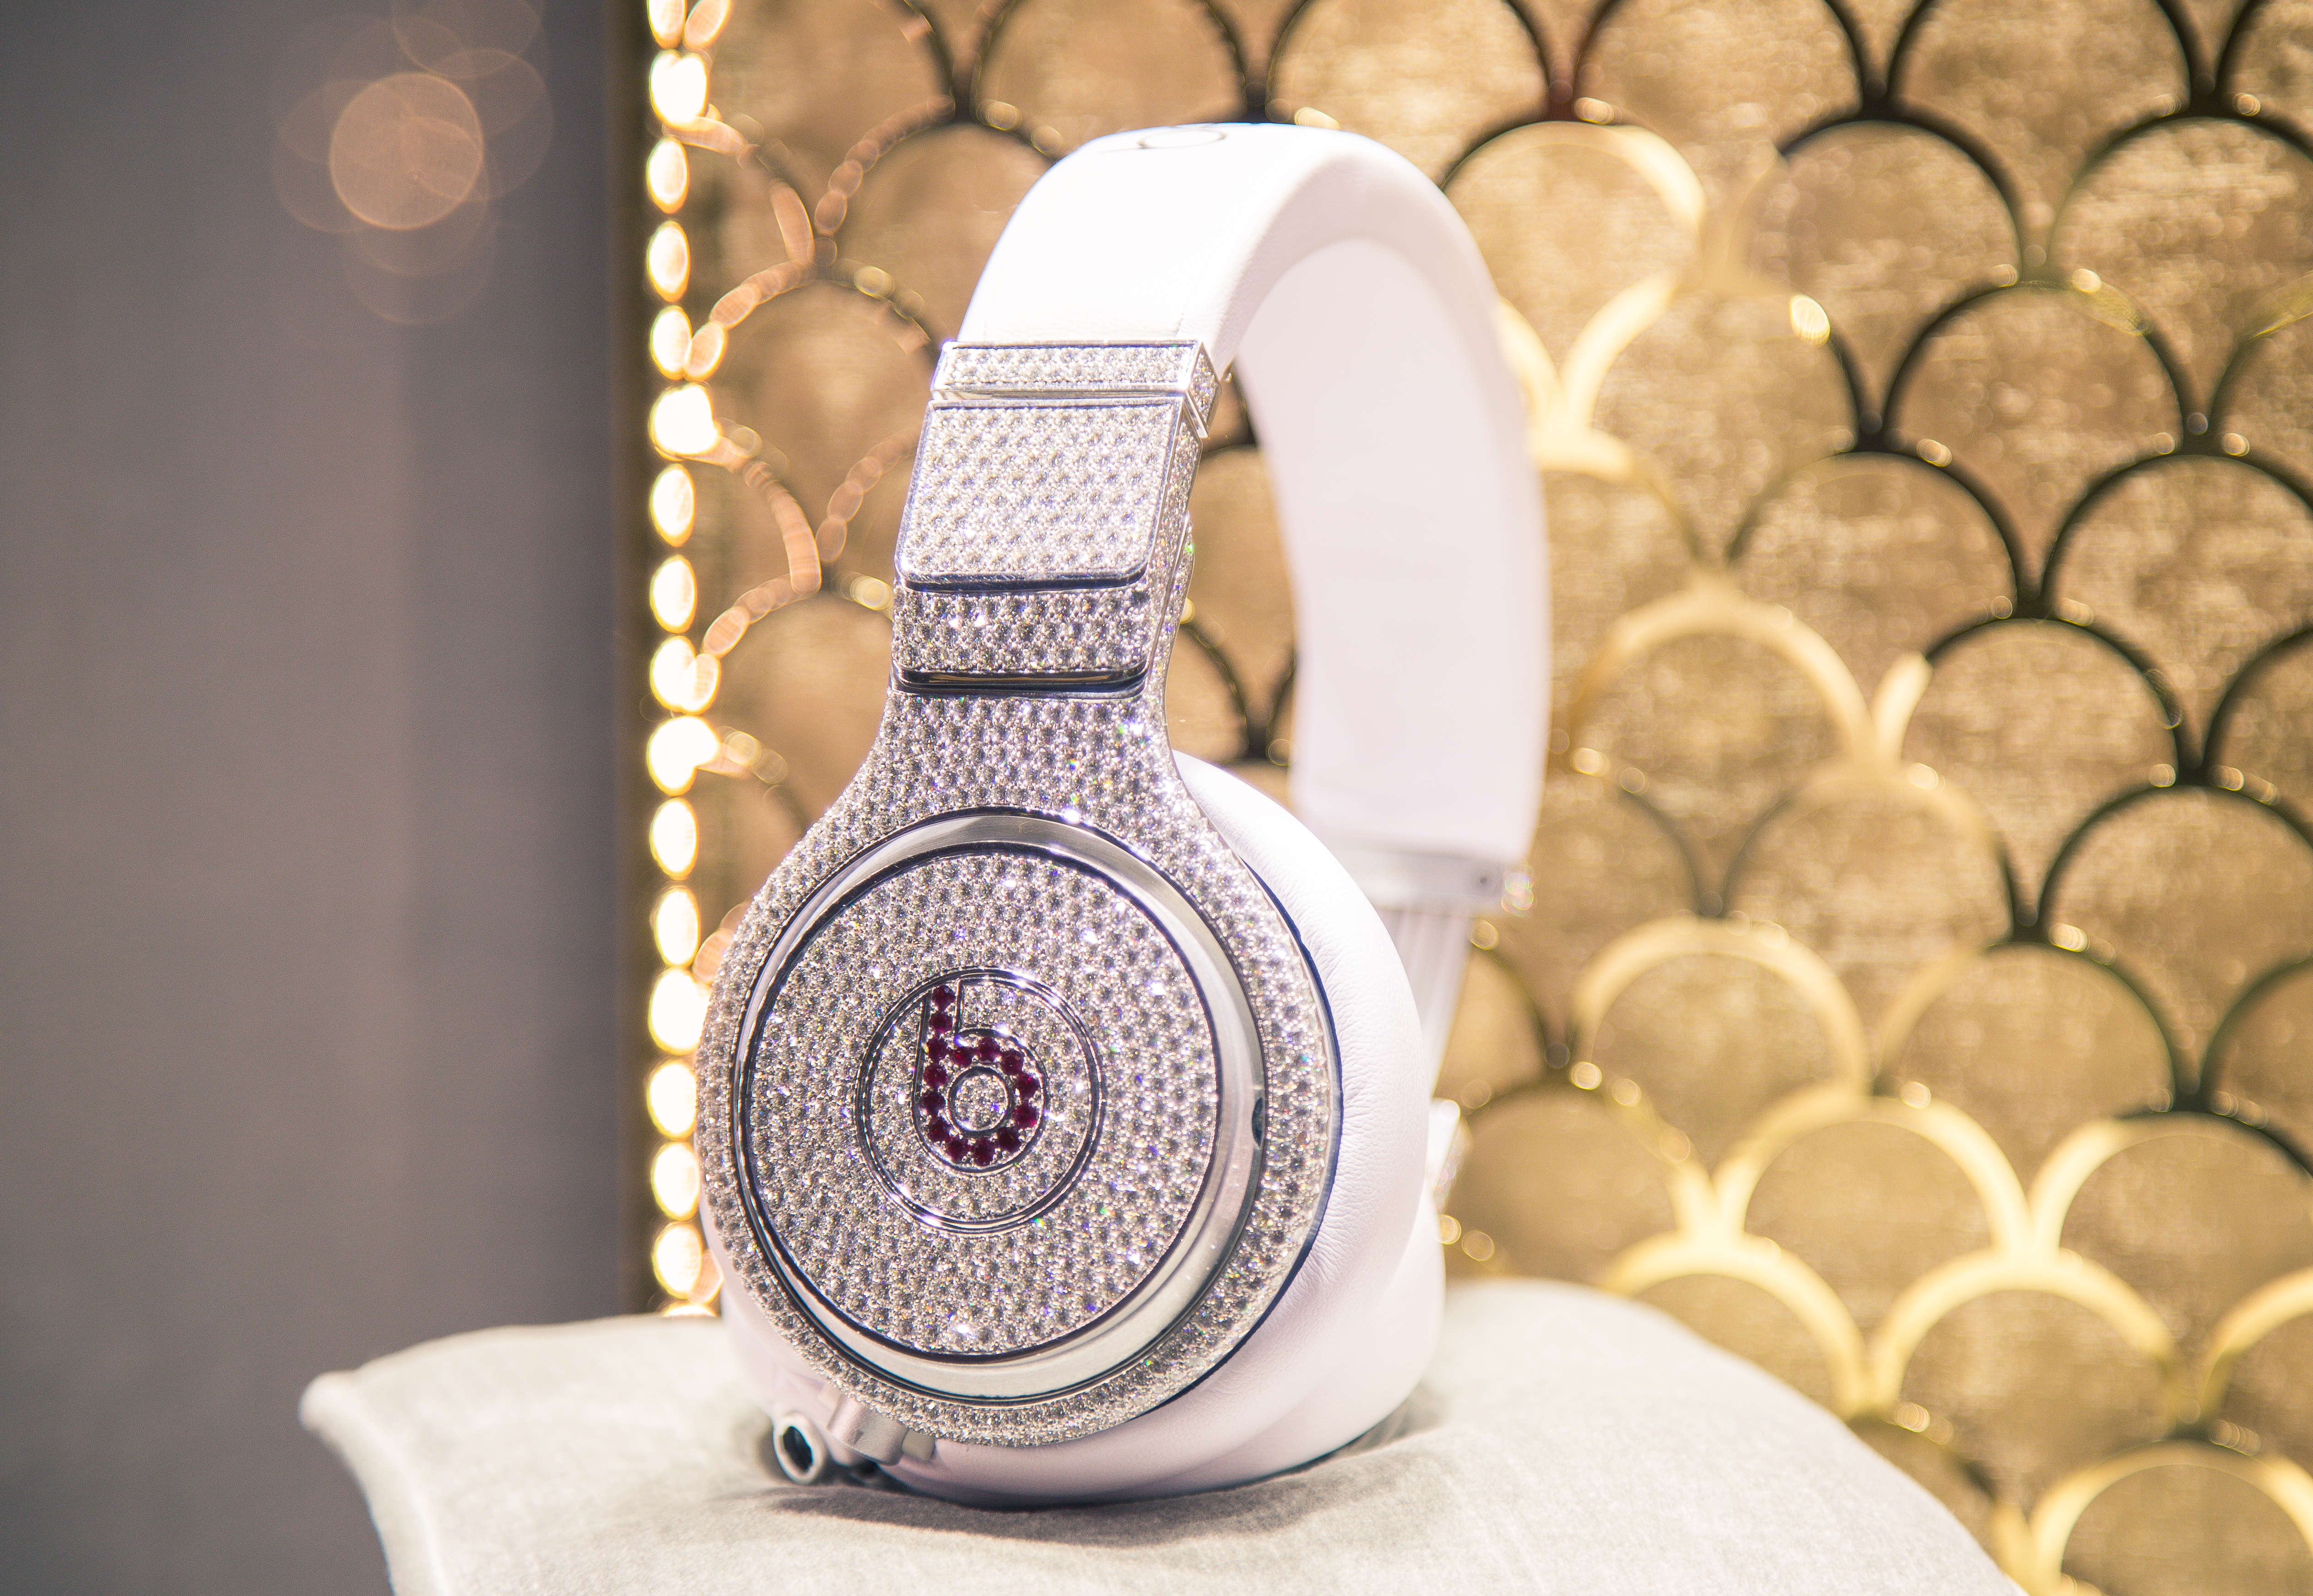 By Tony Webster from San Francisco, California (Diamond Beats by Dre Headphones) [CC BY 2.0 (https://creativecommons.org/licenses/by/2.0)], via Wikimedia Commons